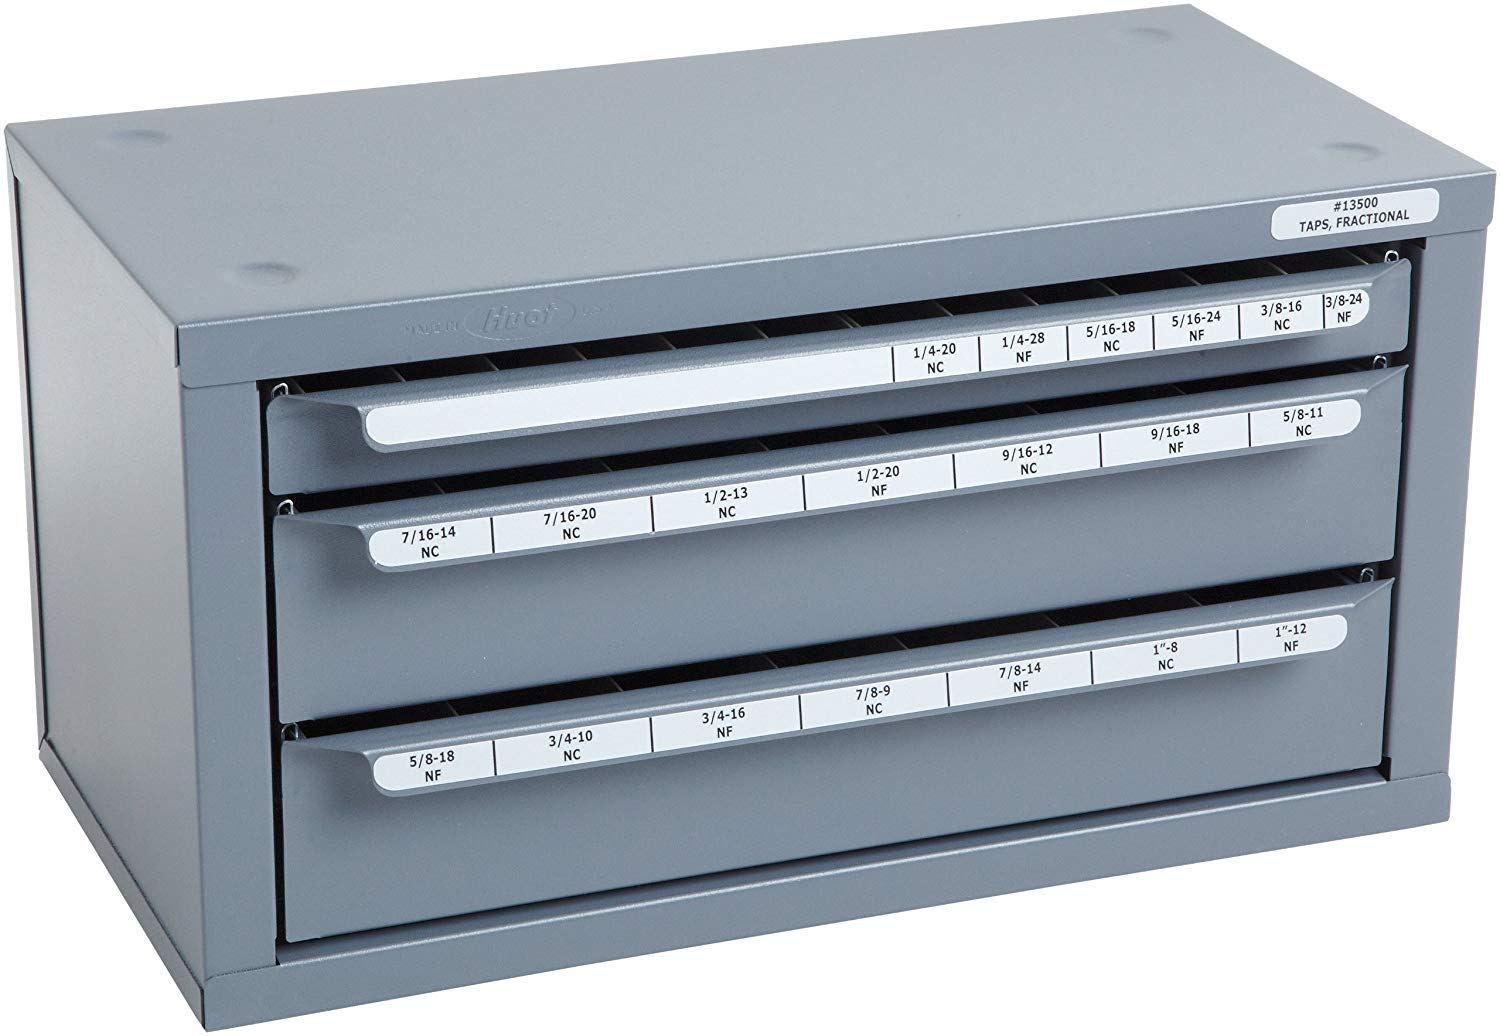 Huot Three-Drawer Fractional Tap Dispenser Cabinet for Fractional Sizes 1//4-20 to 1-12